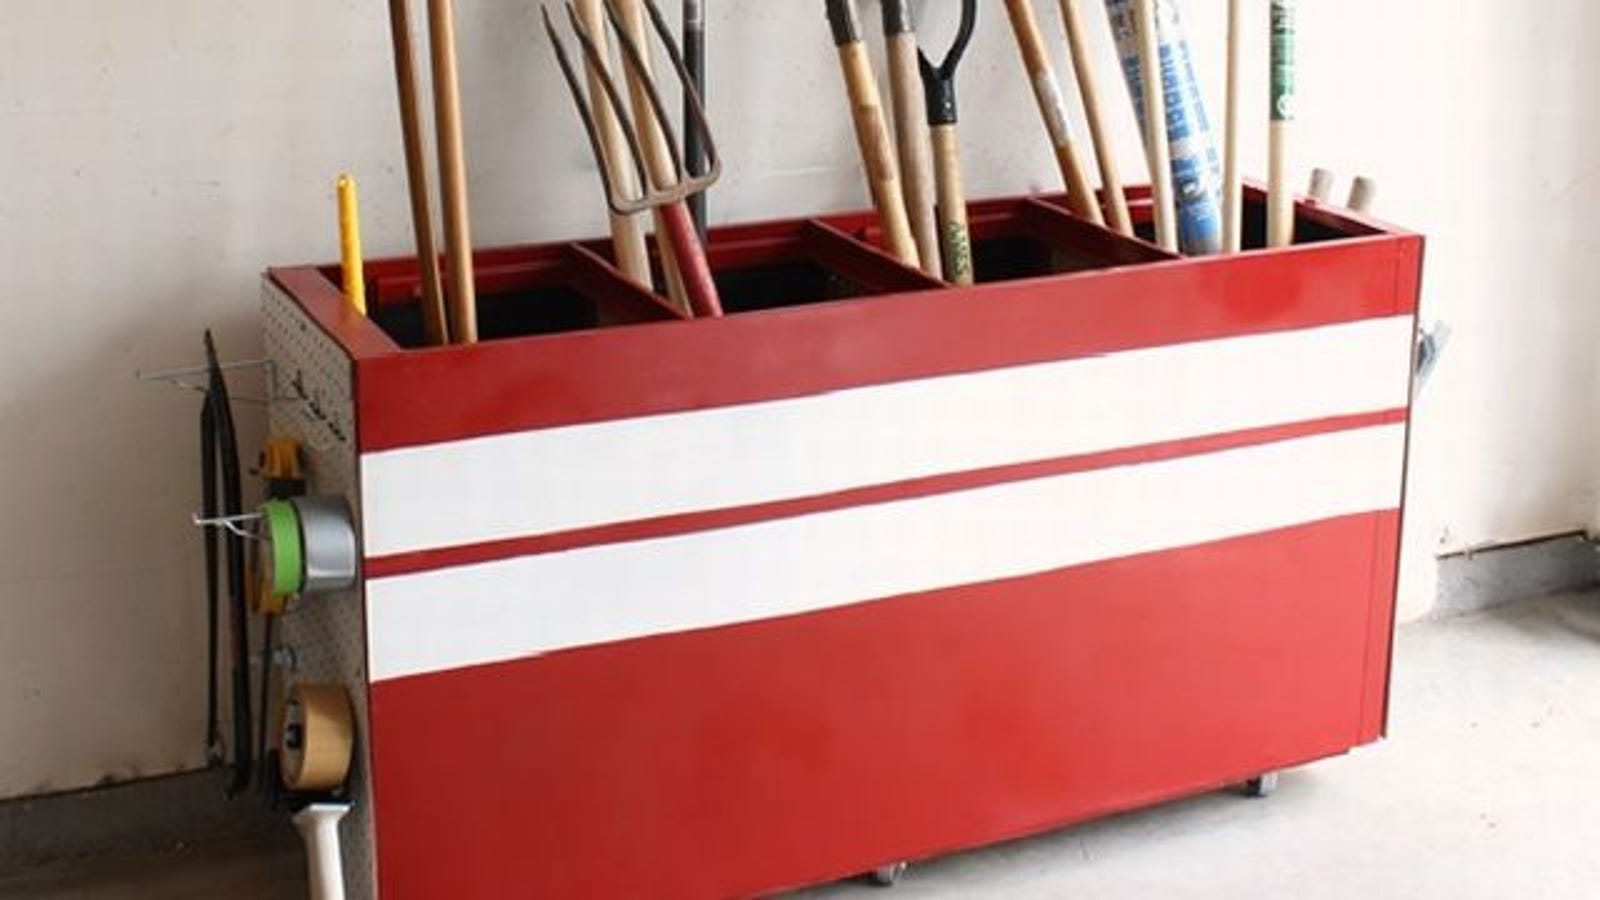 Repurpose An Old File Cabinet As Garage Storage